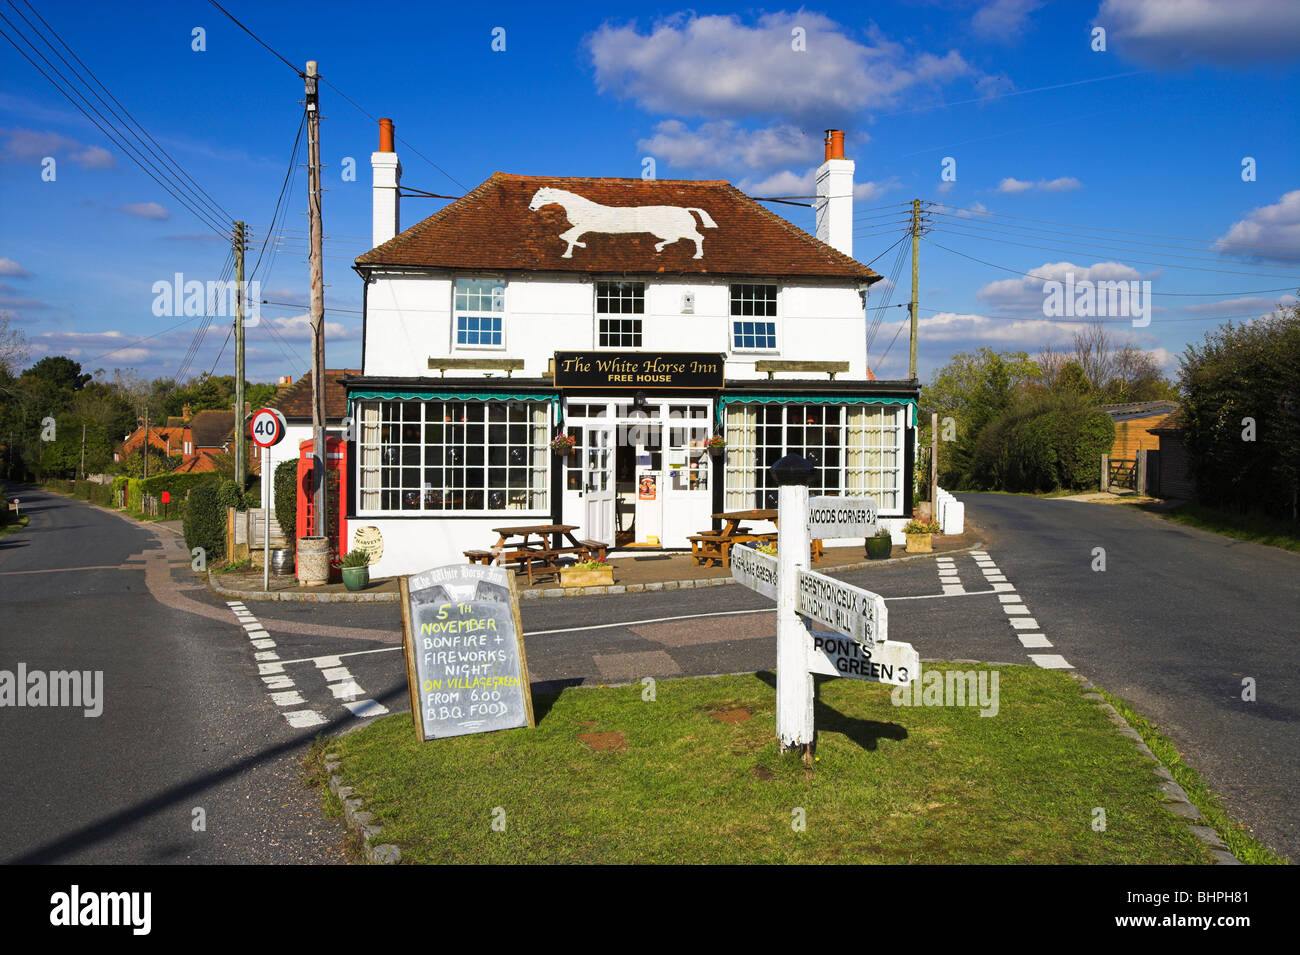 'White Horse' pub Bodle Street Green Sussex England - Stock Image